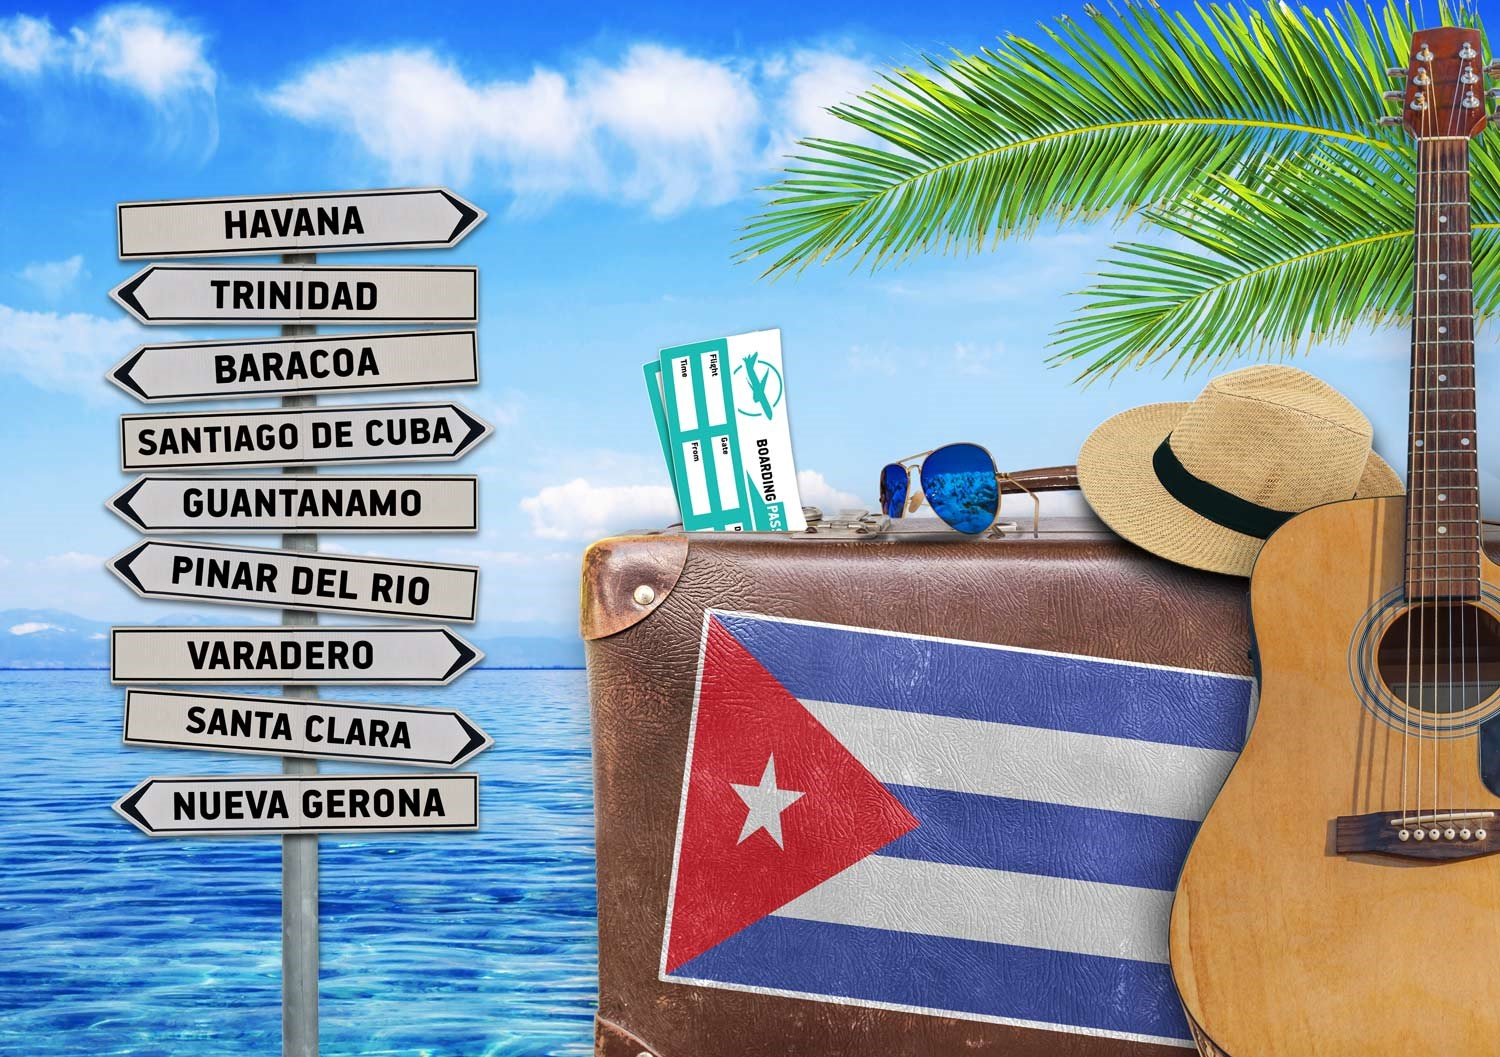 requisitos para viajar a cuba desde estados unidos